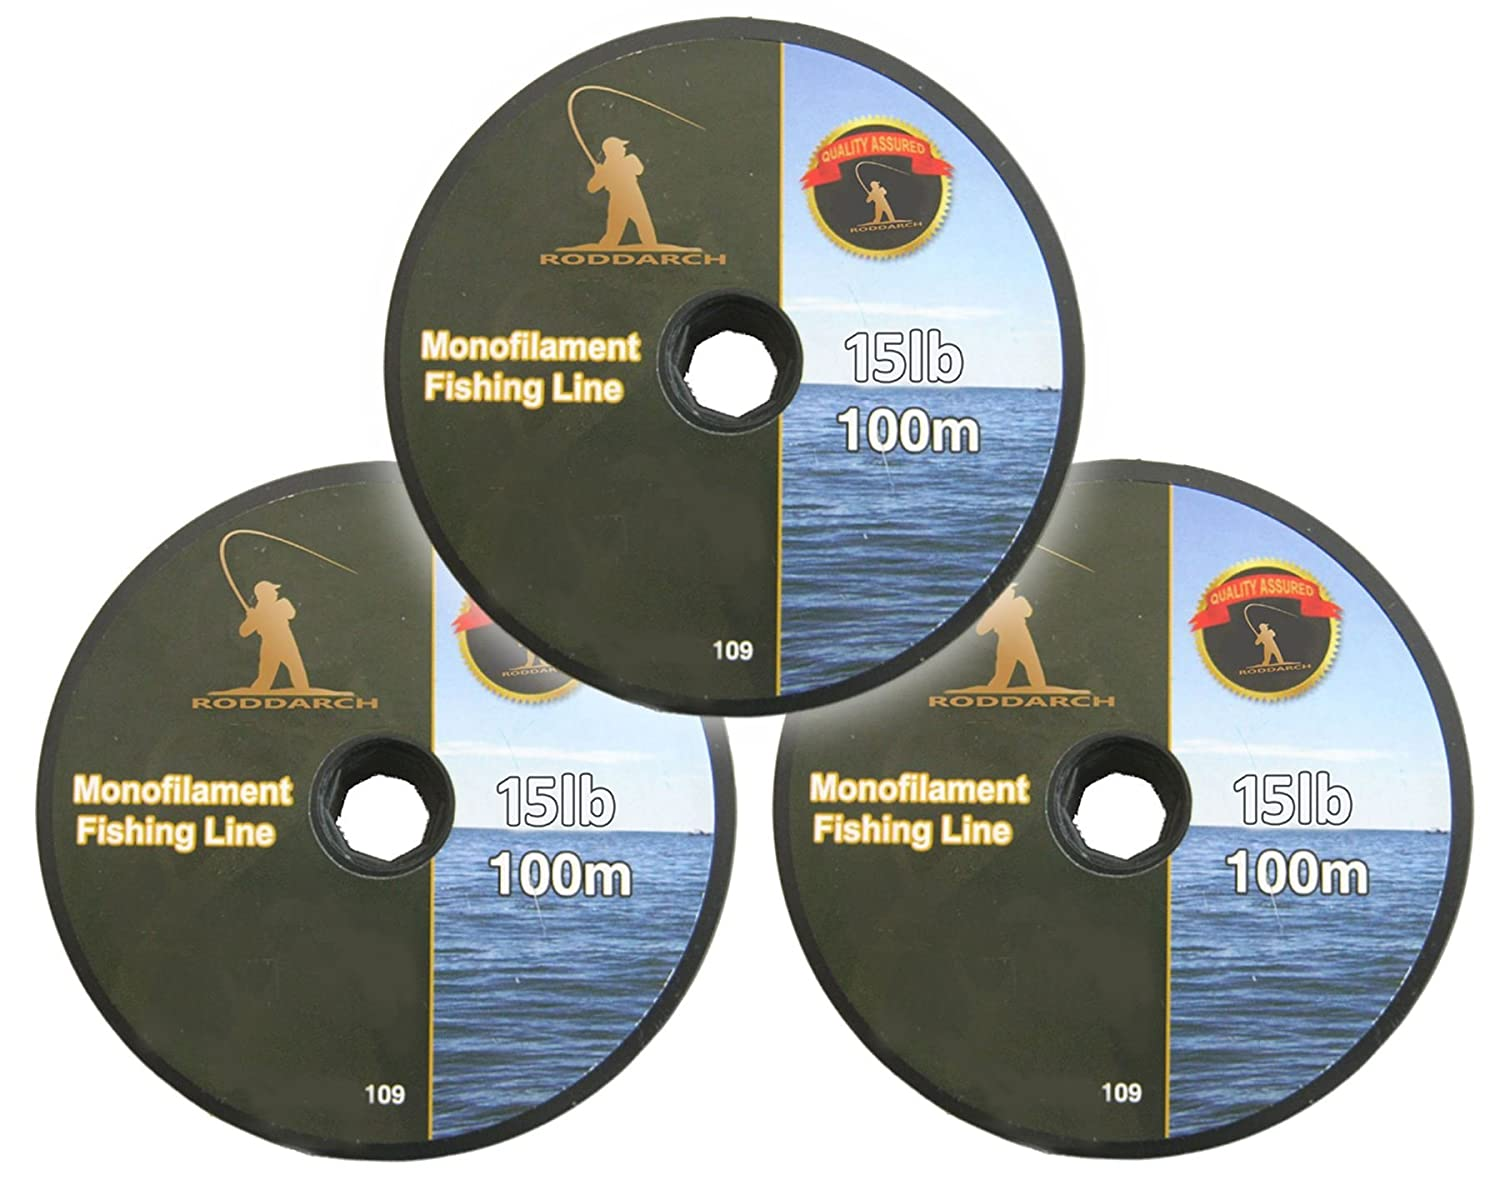 3 x 100m Fishing Line. Coarse, Sea, Game or Boat Angling. Choose 7lb or 15lb Line Strength. Roddarch